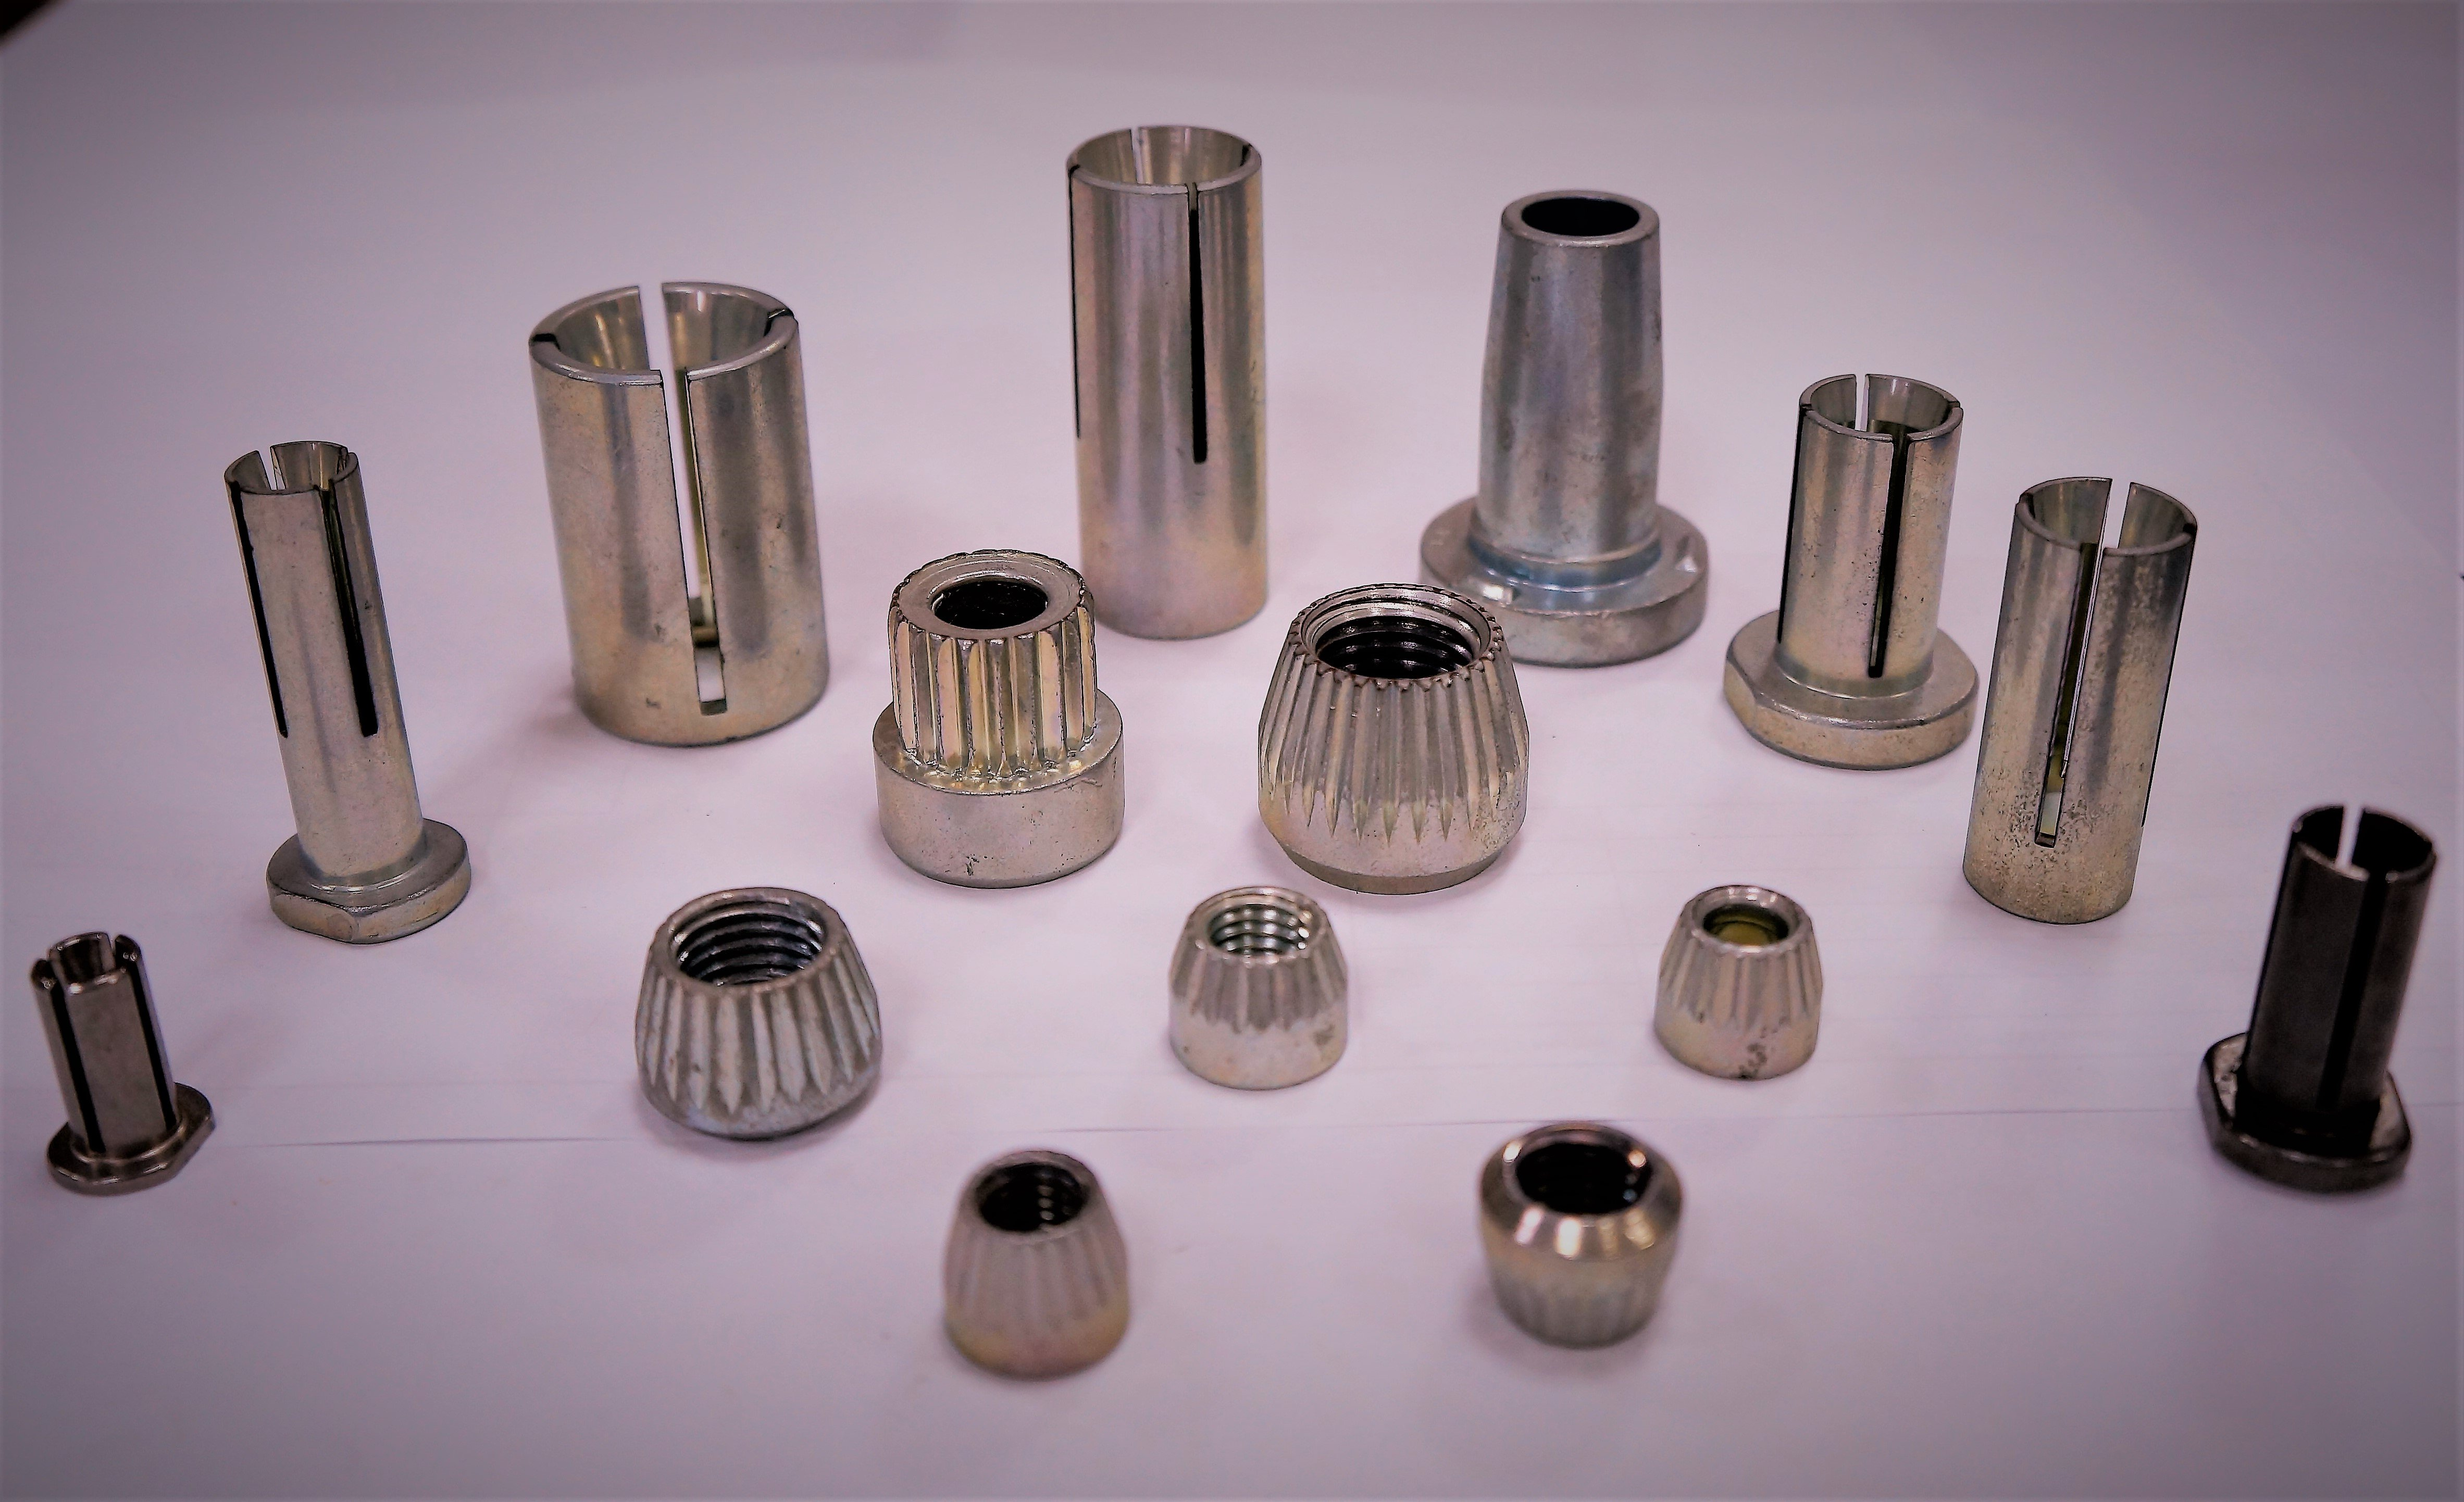 Agricultural / Tractor Collar for Vehicle Fastener made by Sunny Screw Industry 三能螺栓工業股份有限公司 - MatchSupplier.com